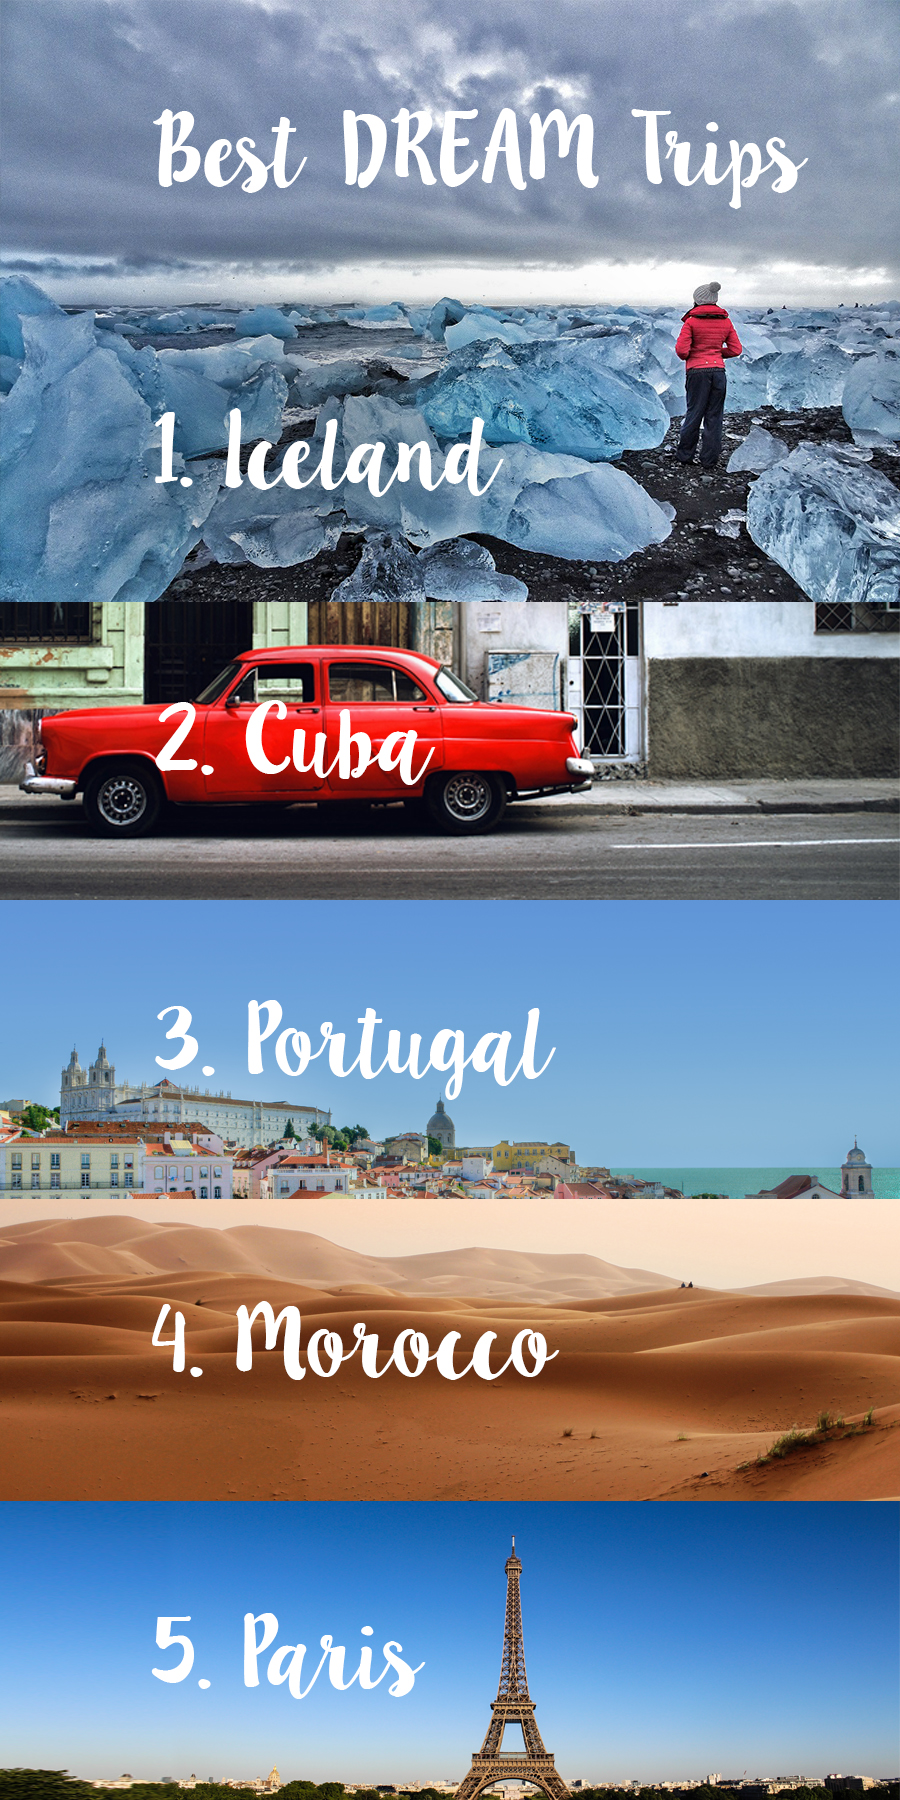 Best Dream Trips Iceland, Cuba, Portugal, Morocco, Paris